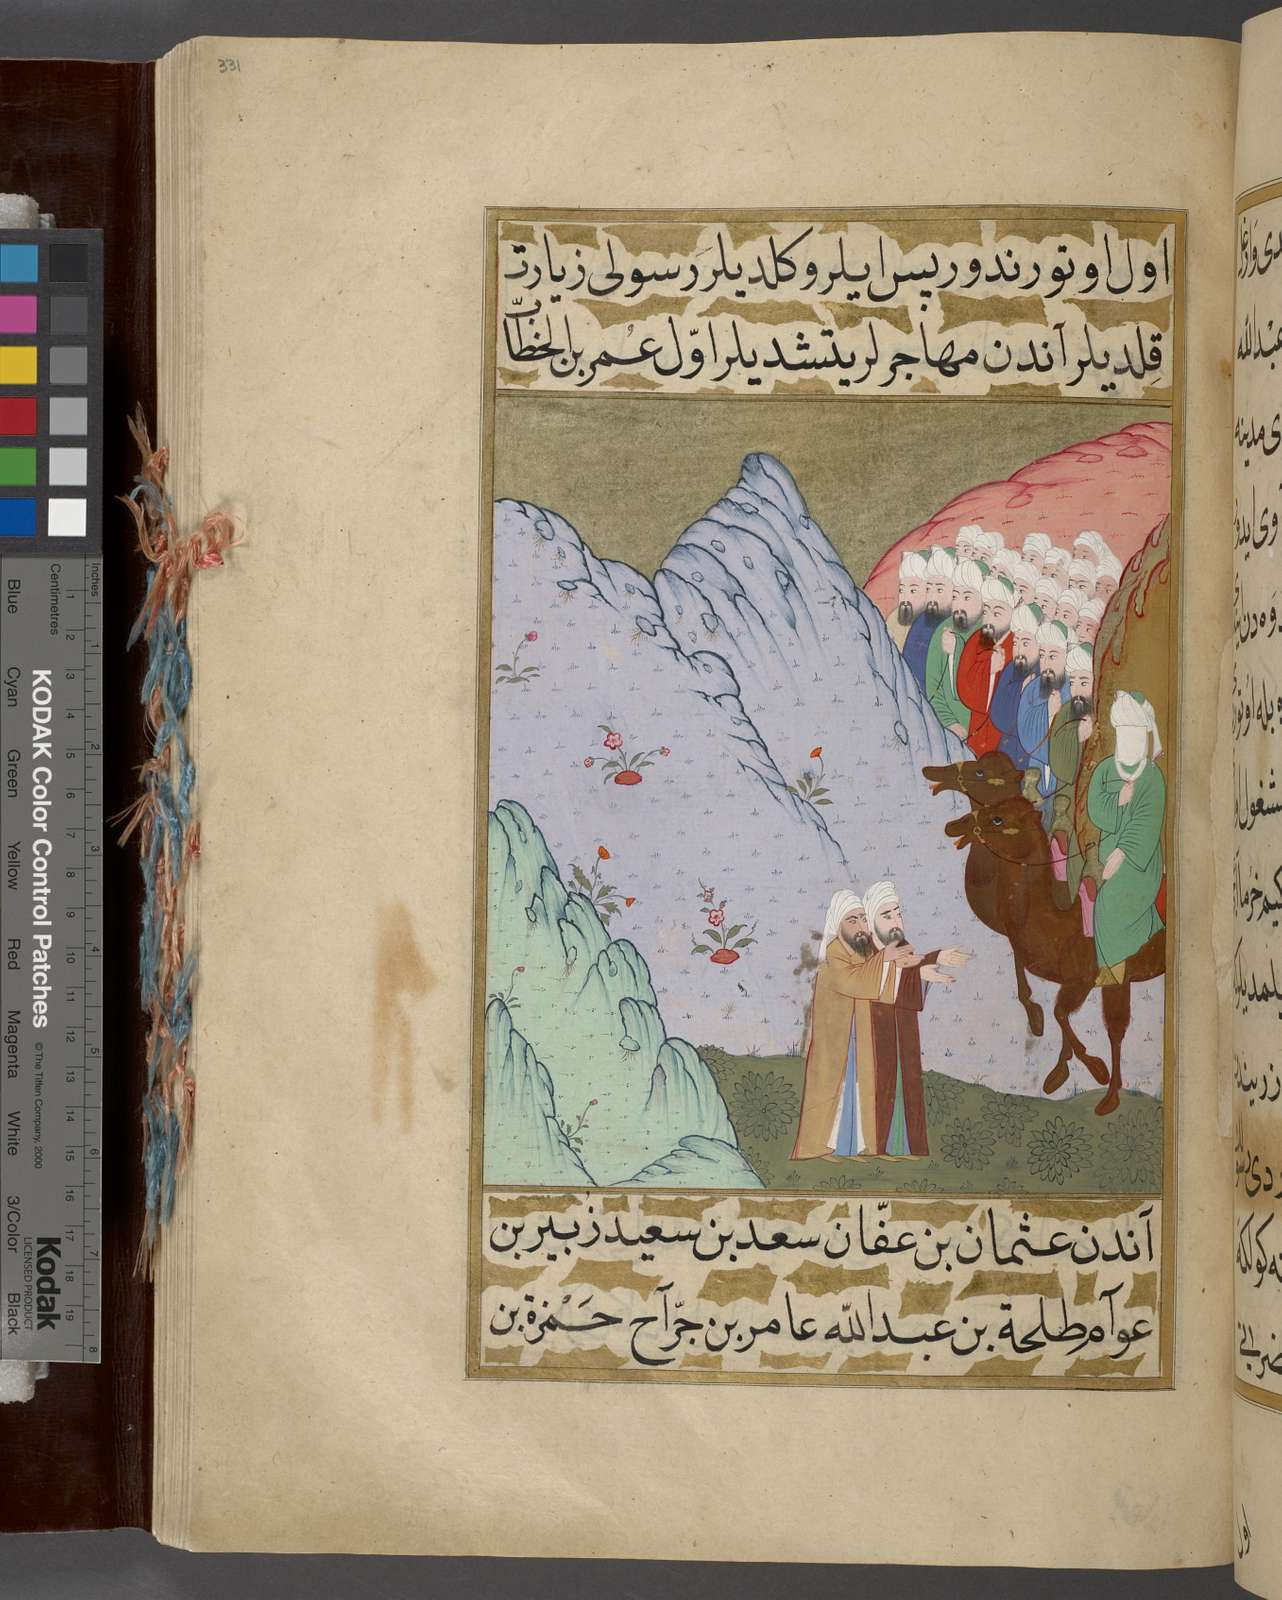 Muhammad and Abû Bakr on their camels meet a delegation that has come out from the city of Medina to greet them.